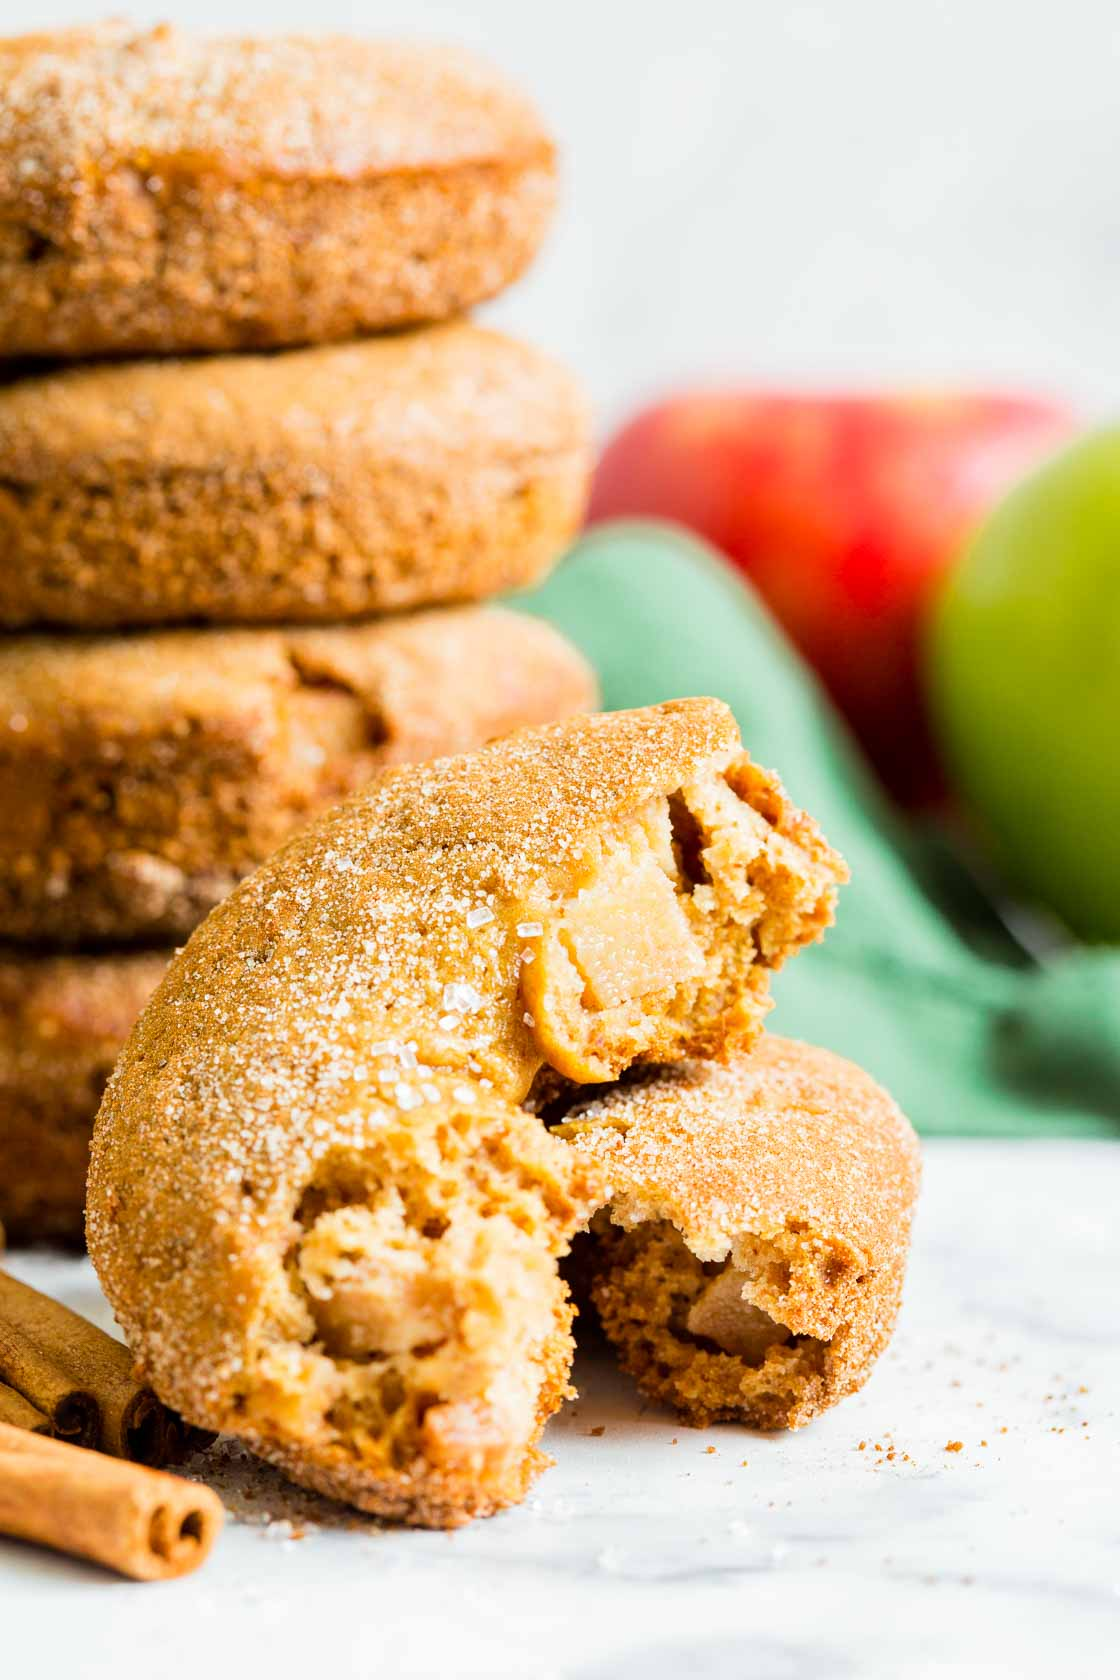 A close up of apple cinnamon donuts broken in half to show apple chunks. A stack of donuts with cinnamon-sugar, a red apple and green cloth in the background.